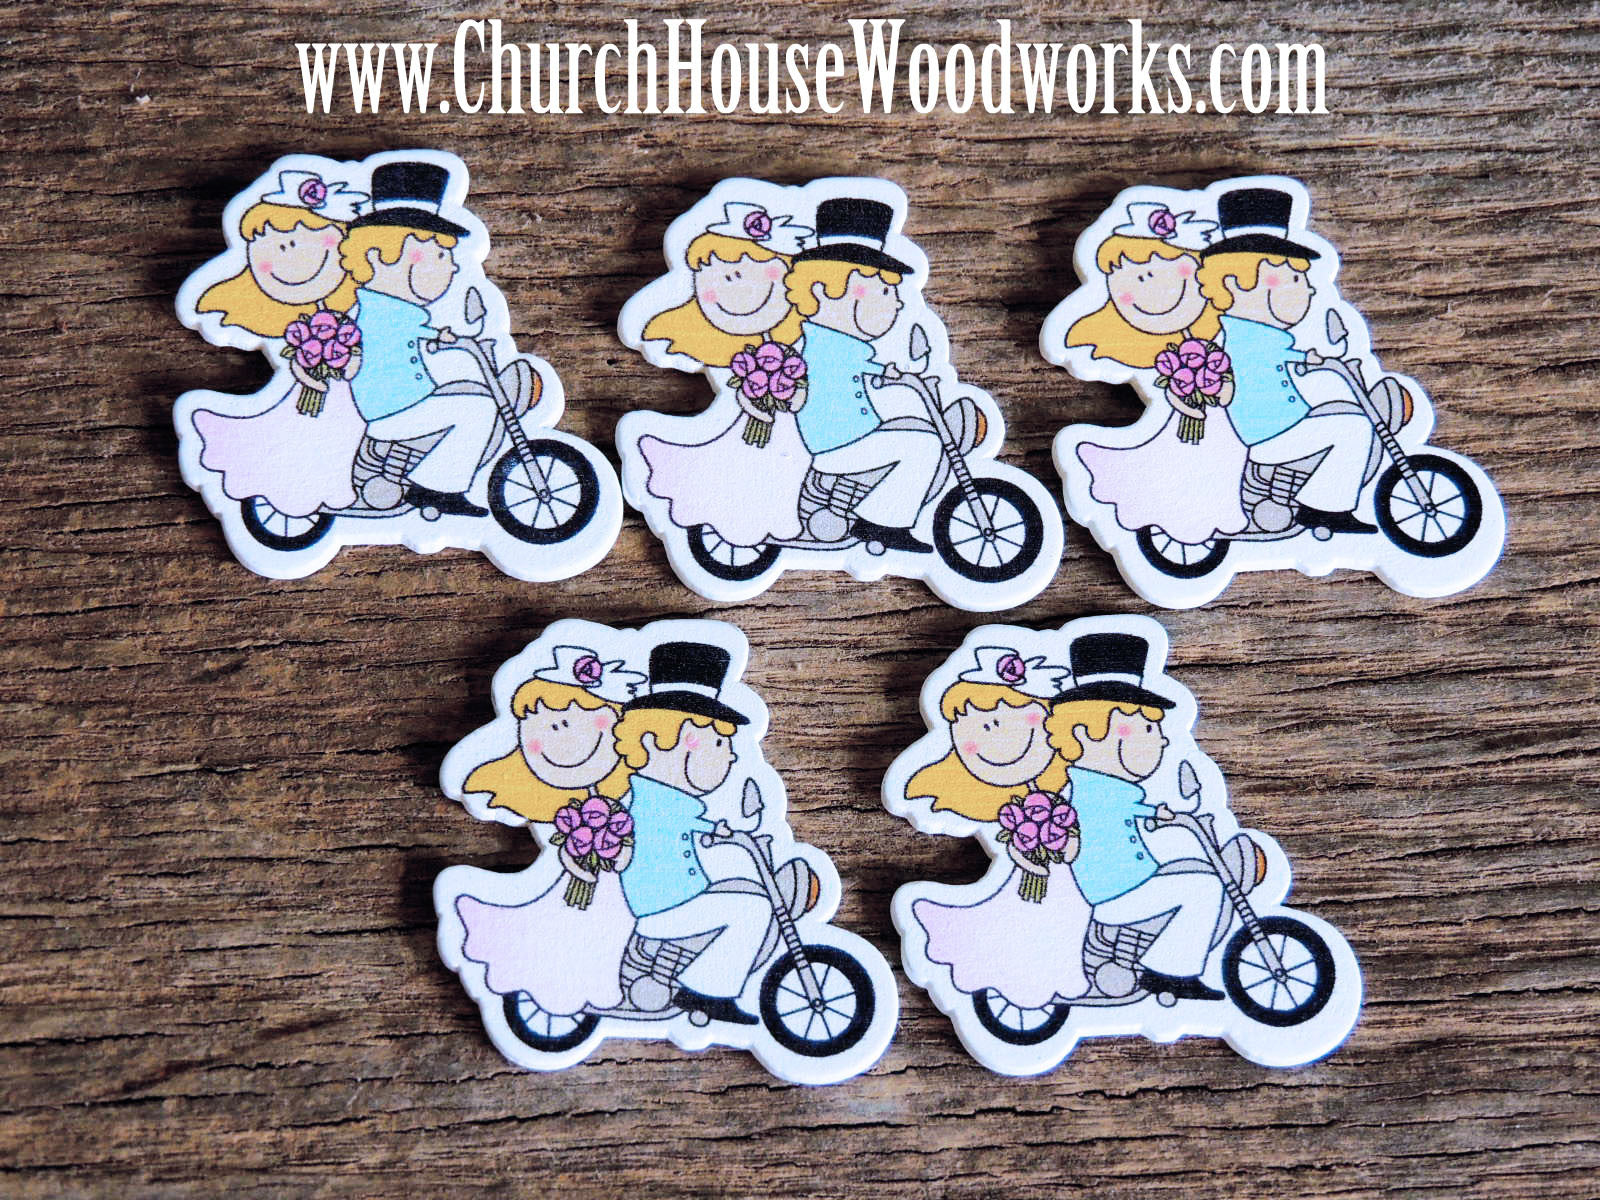 Bride Groom On Motorcycle Wood- Pack of 5-DIY Crafts